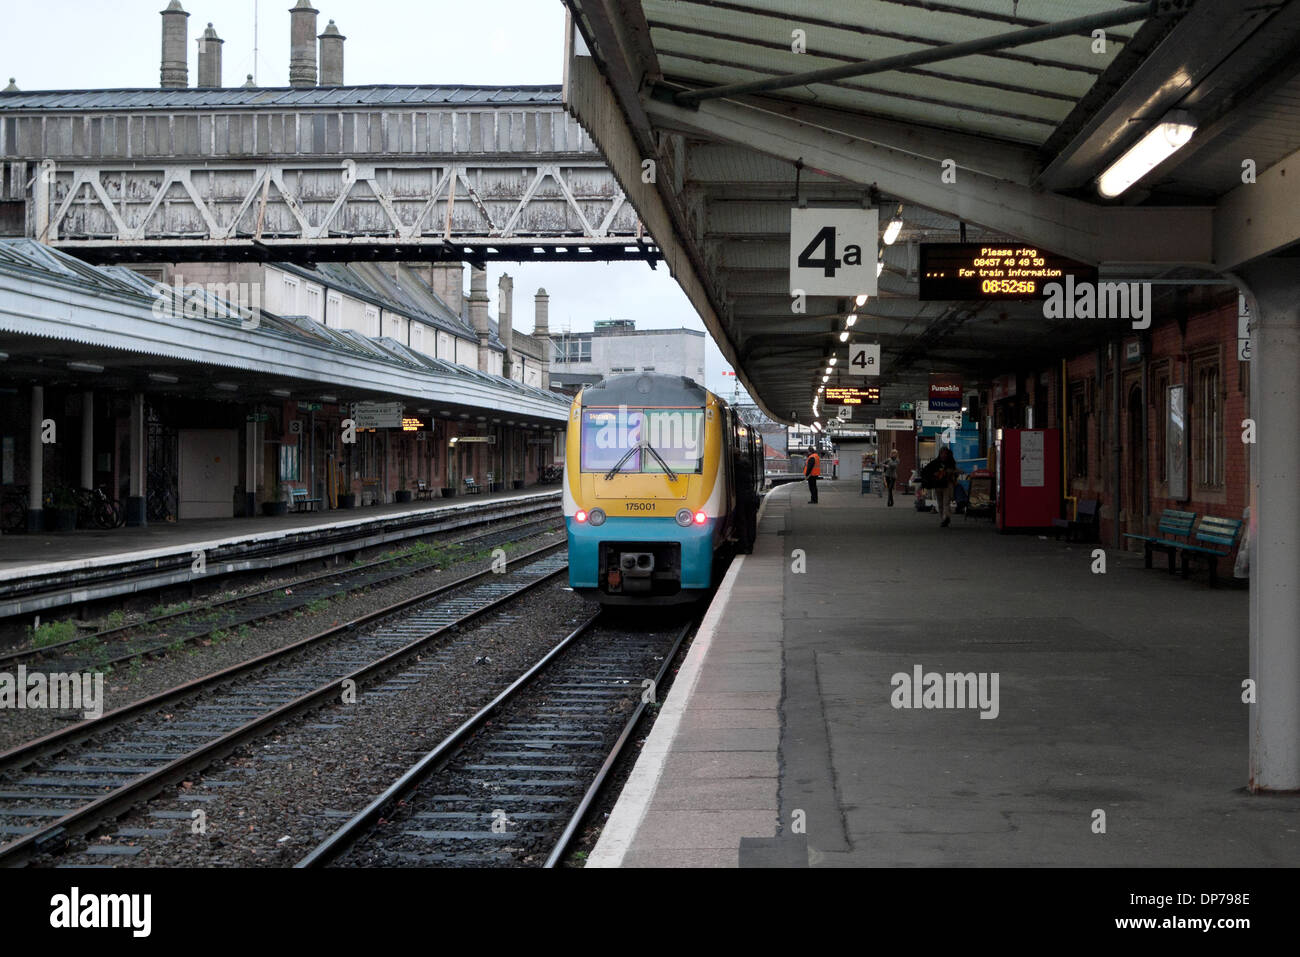 Arriva Train stopped on platform 4a at Shrewsbury Railway Station in winter with view of walking platform UK  KATHY DEWITT - Stock Image